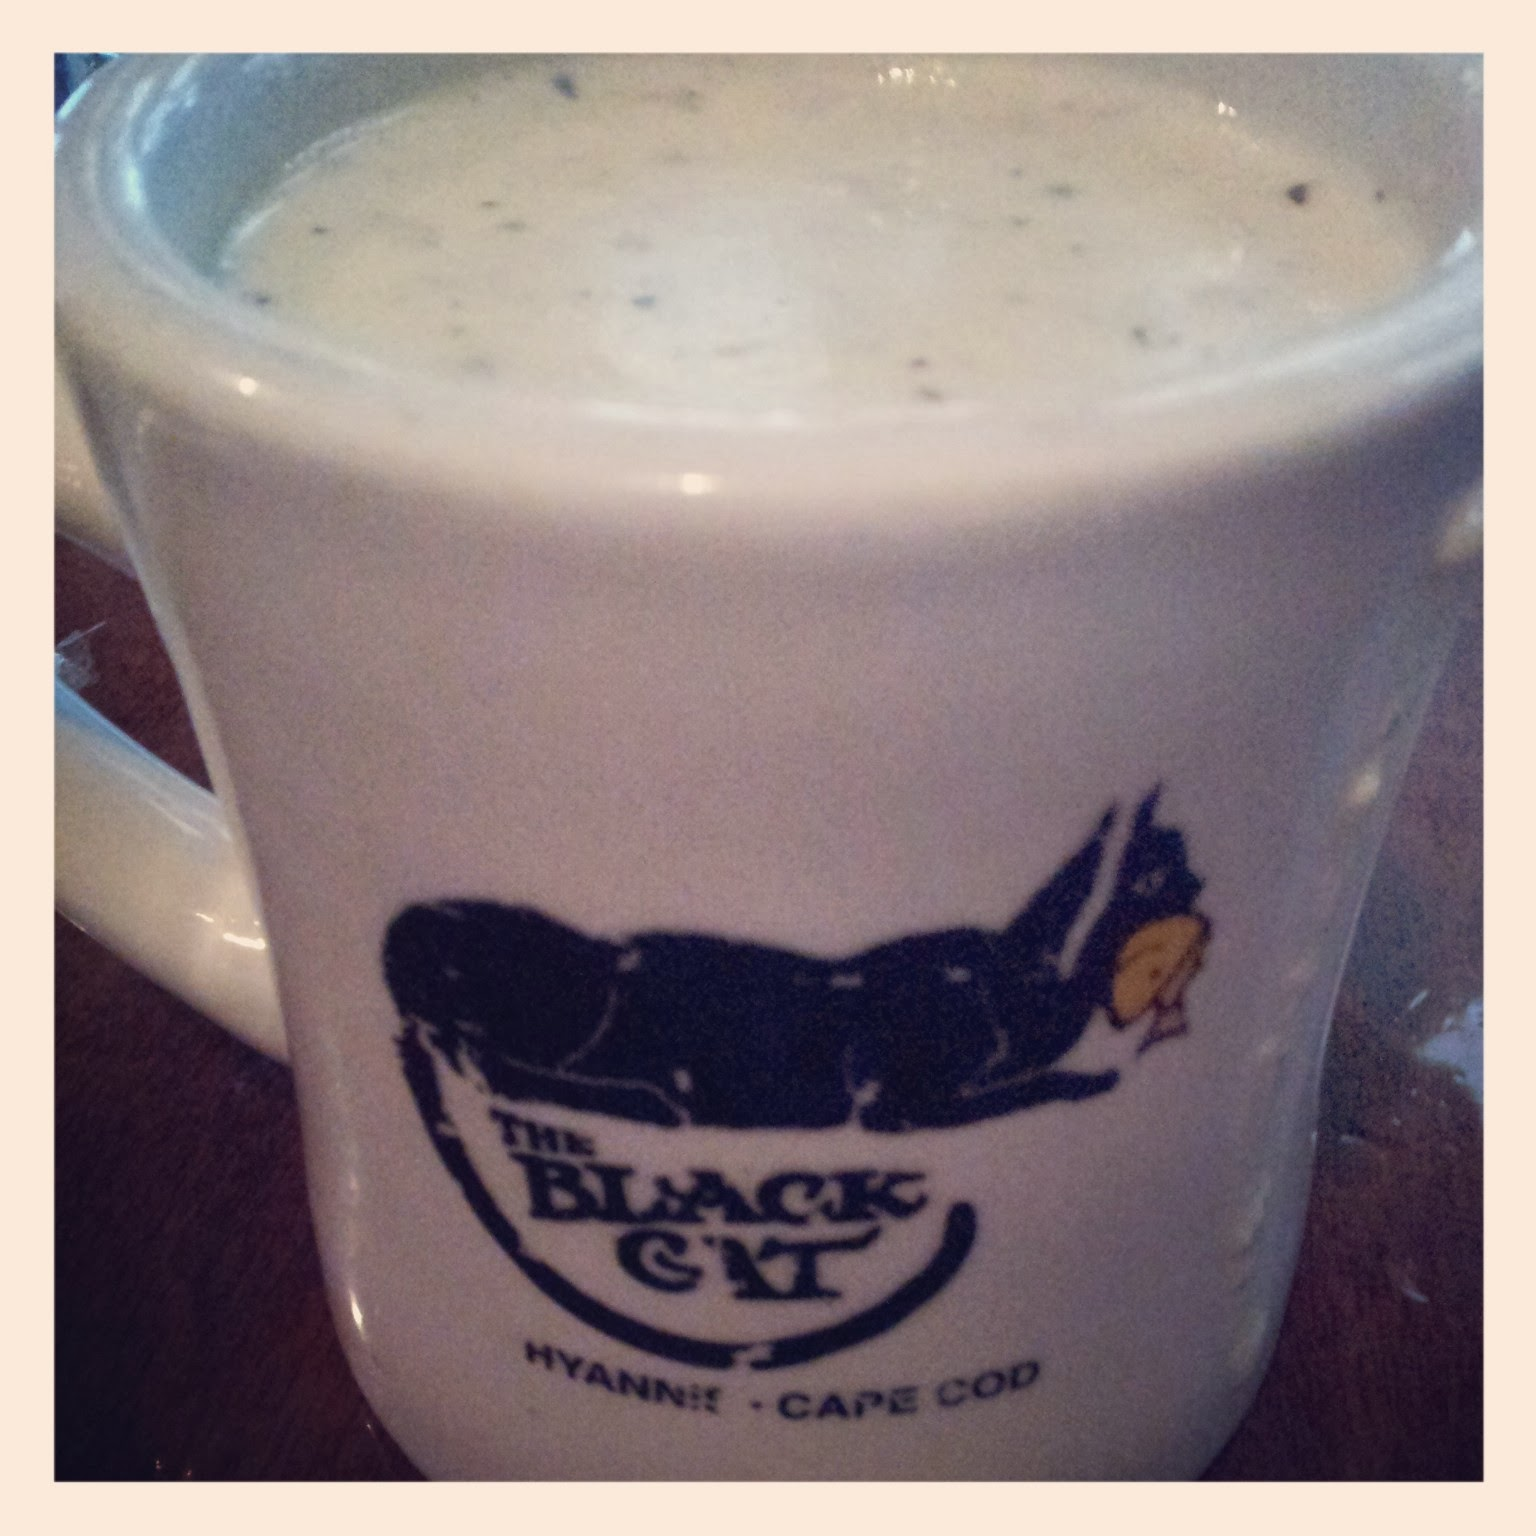 Clam Chowder at Black Cat Tavern, Hyannis, Cape Cod